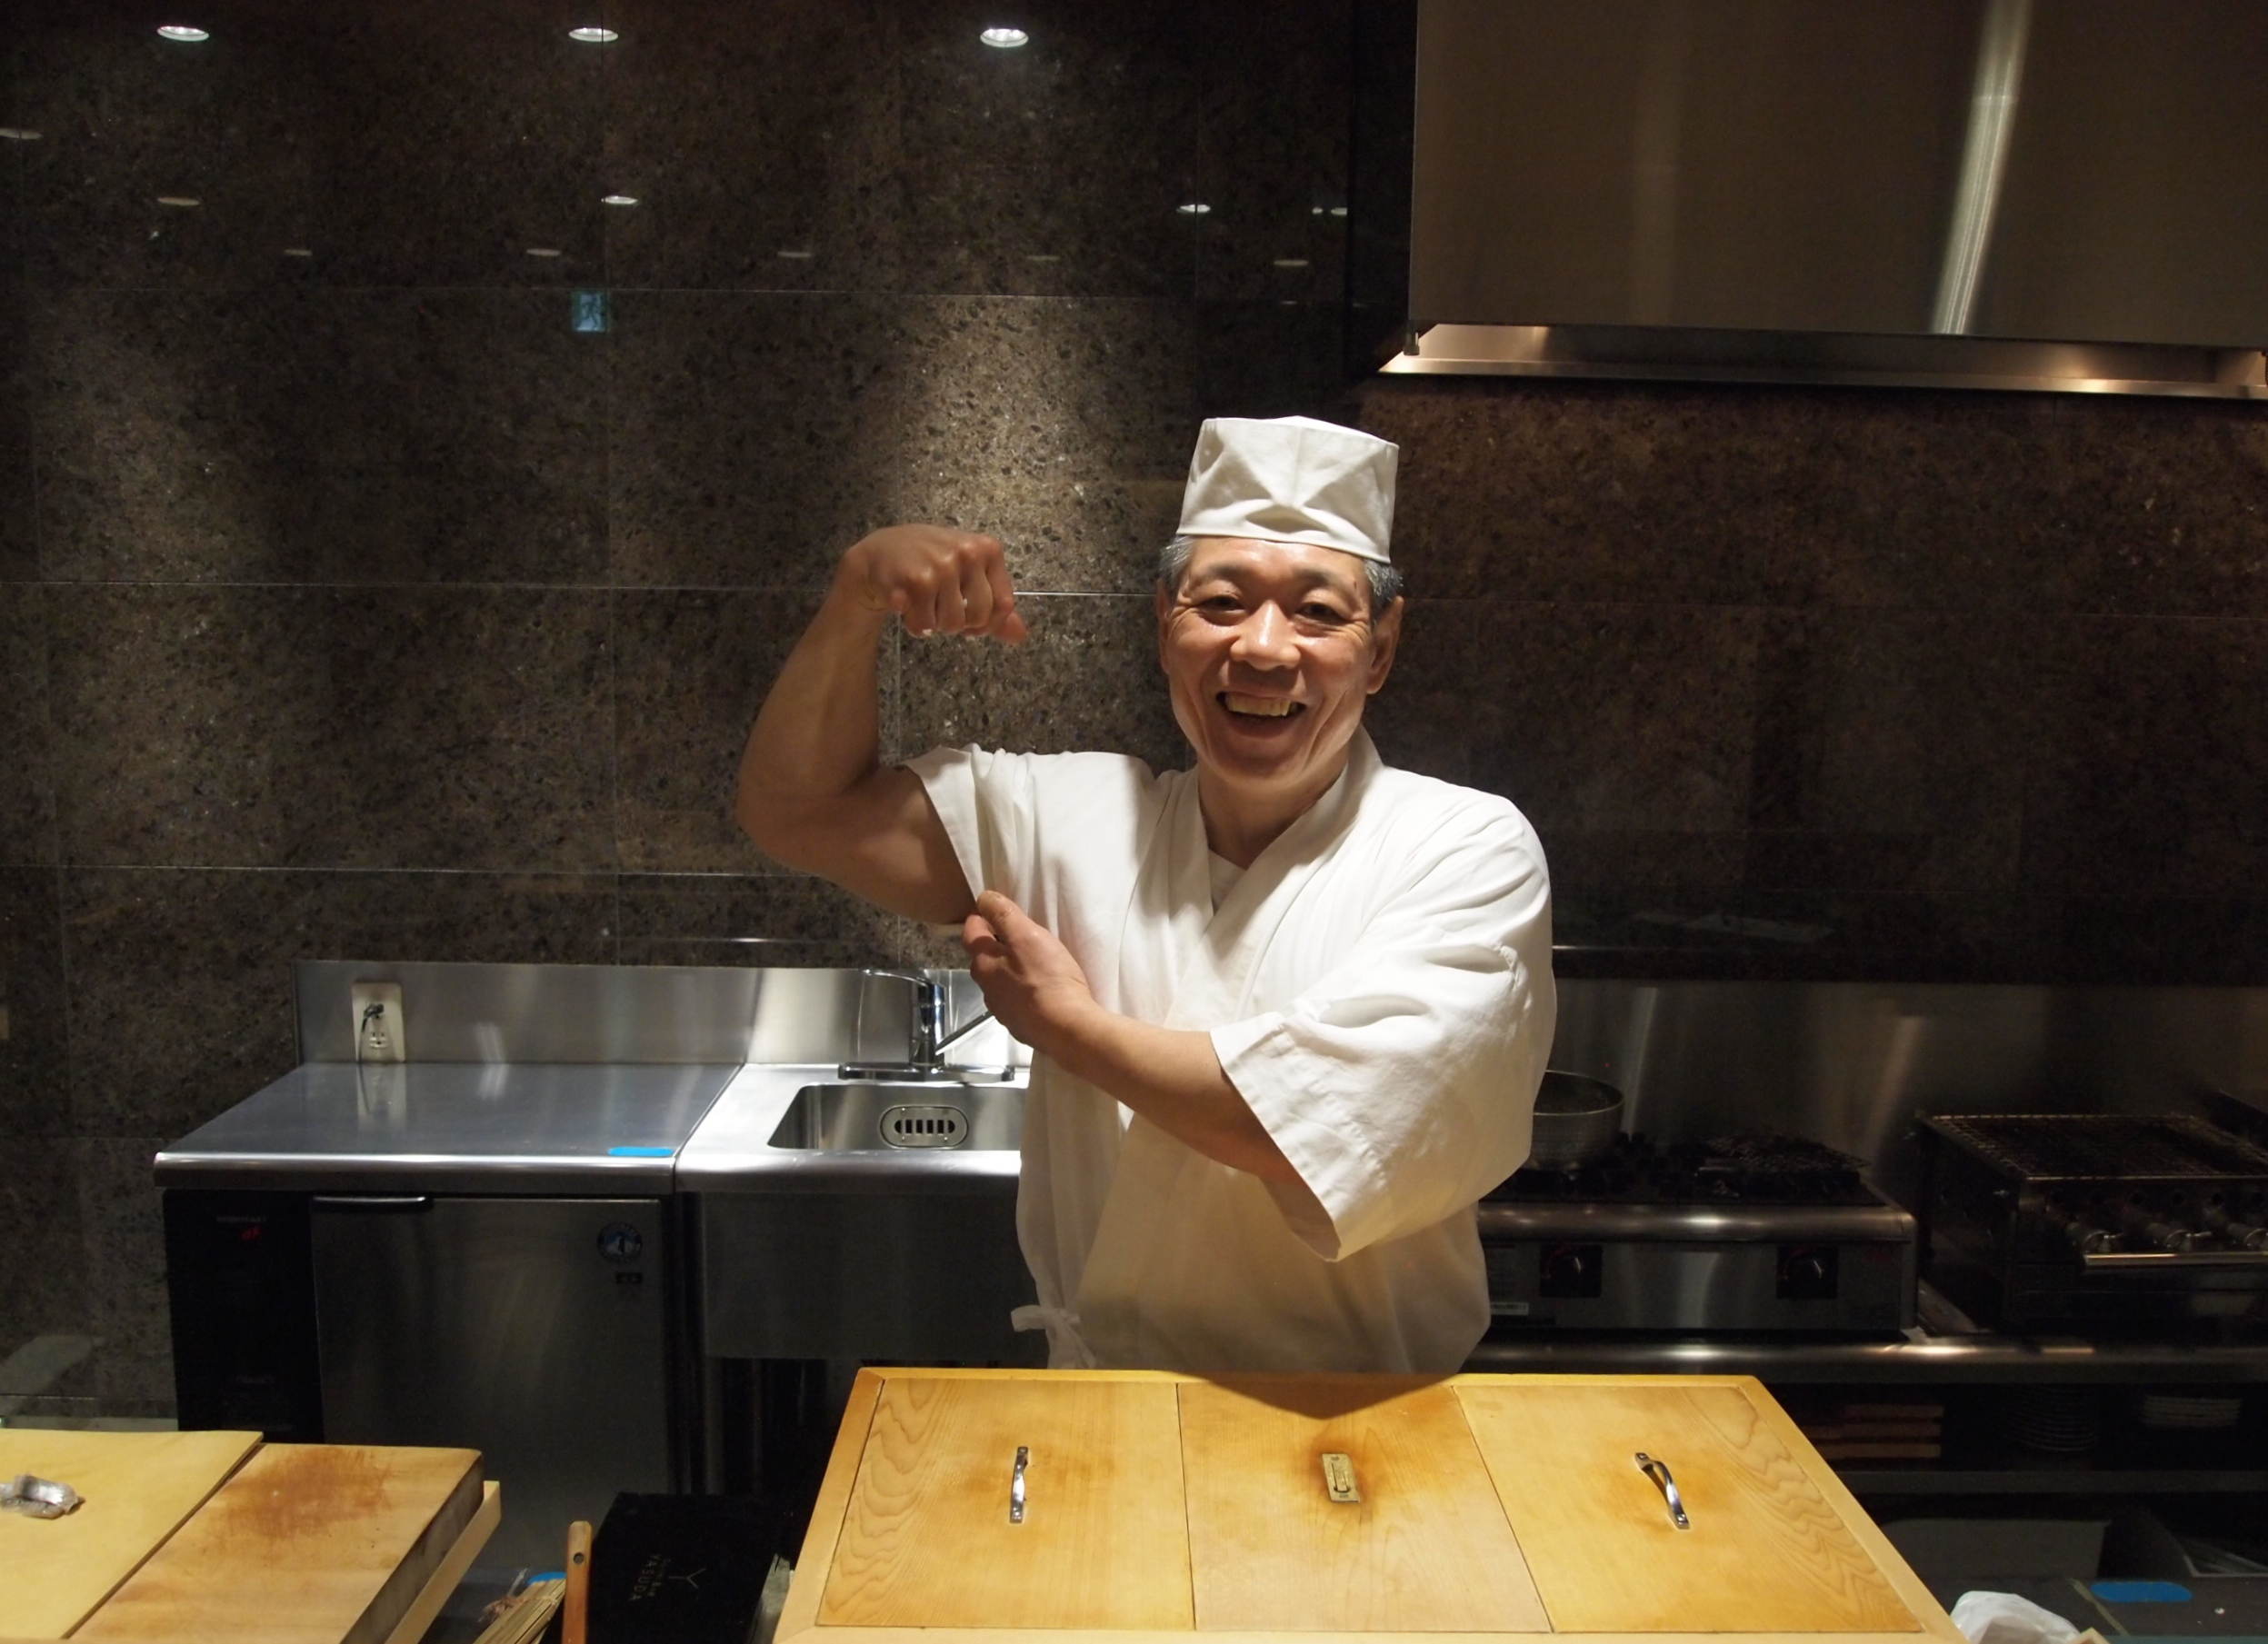 Tokyo. Sitting at the  eight-seat sushi bar  manned by Chef Yasuda, one of the world's most famous sushi chefs.